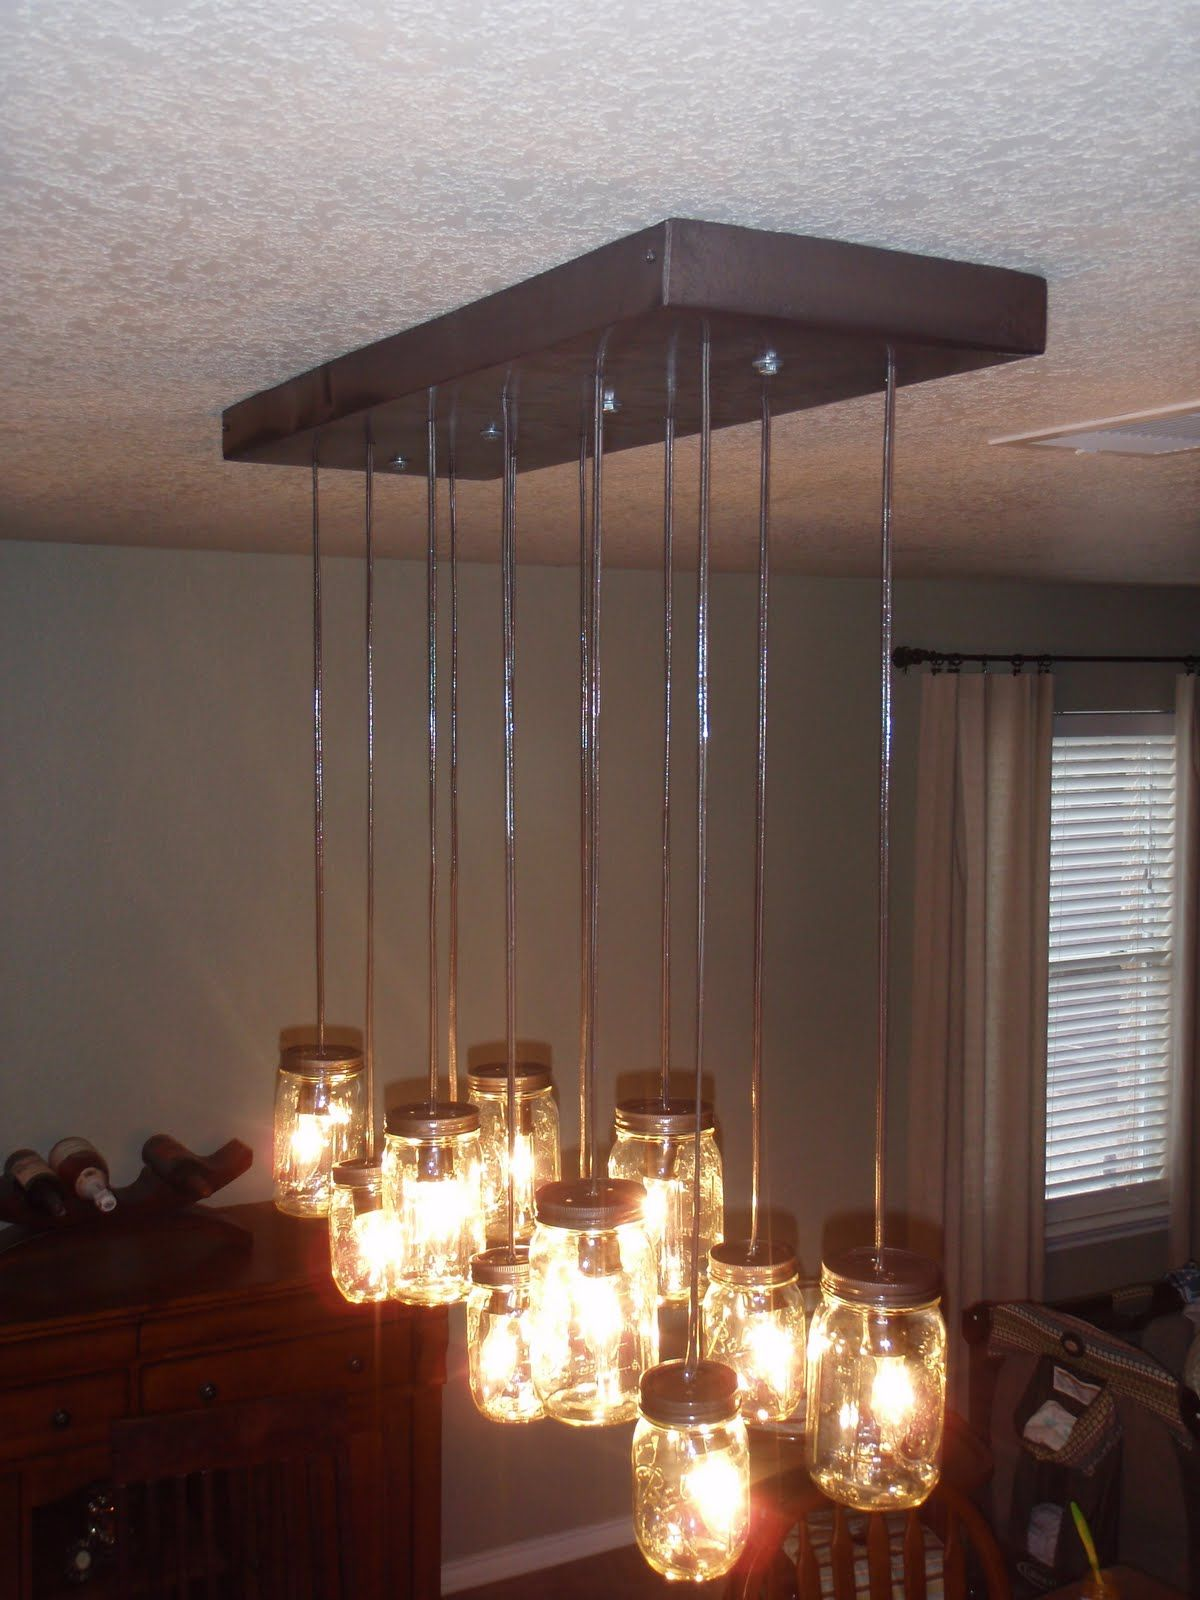 Next house project mason jar chandelierbrad figured out how to